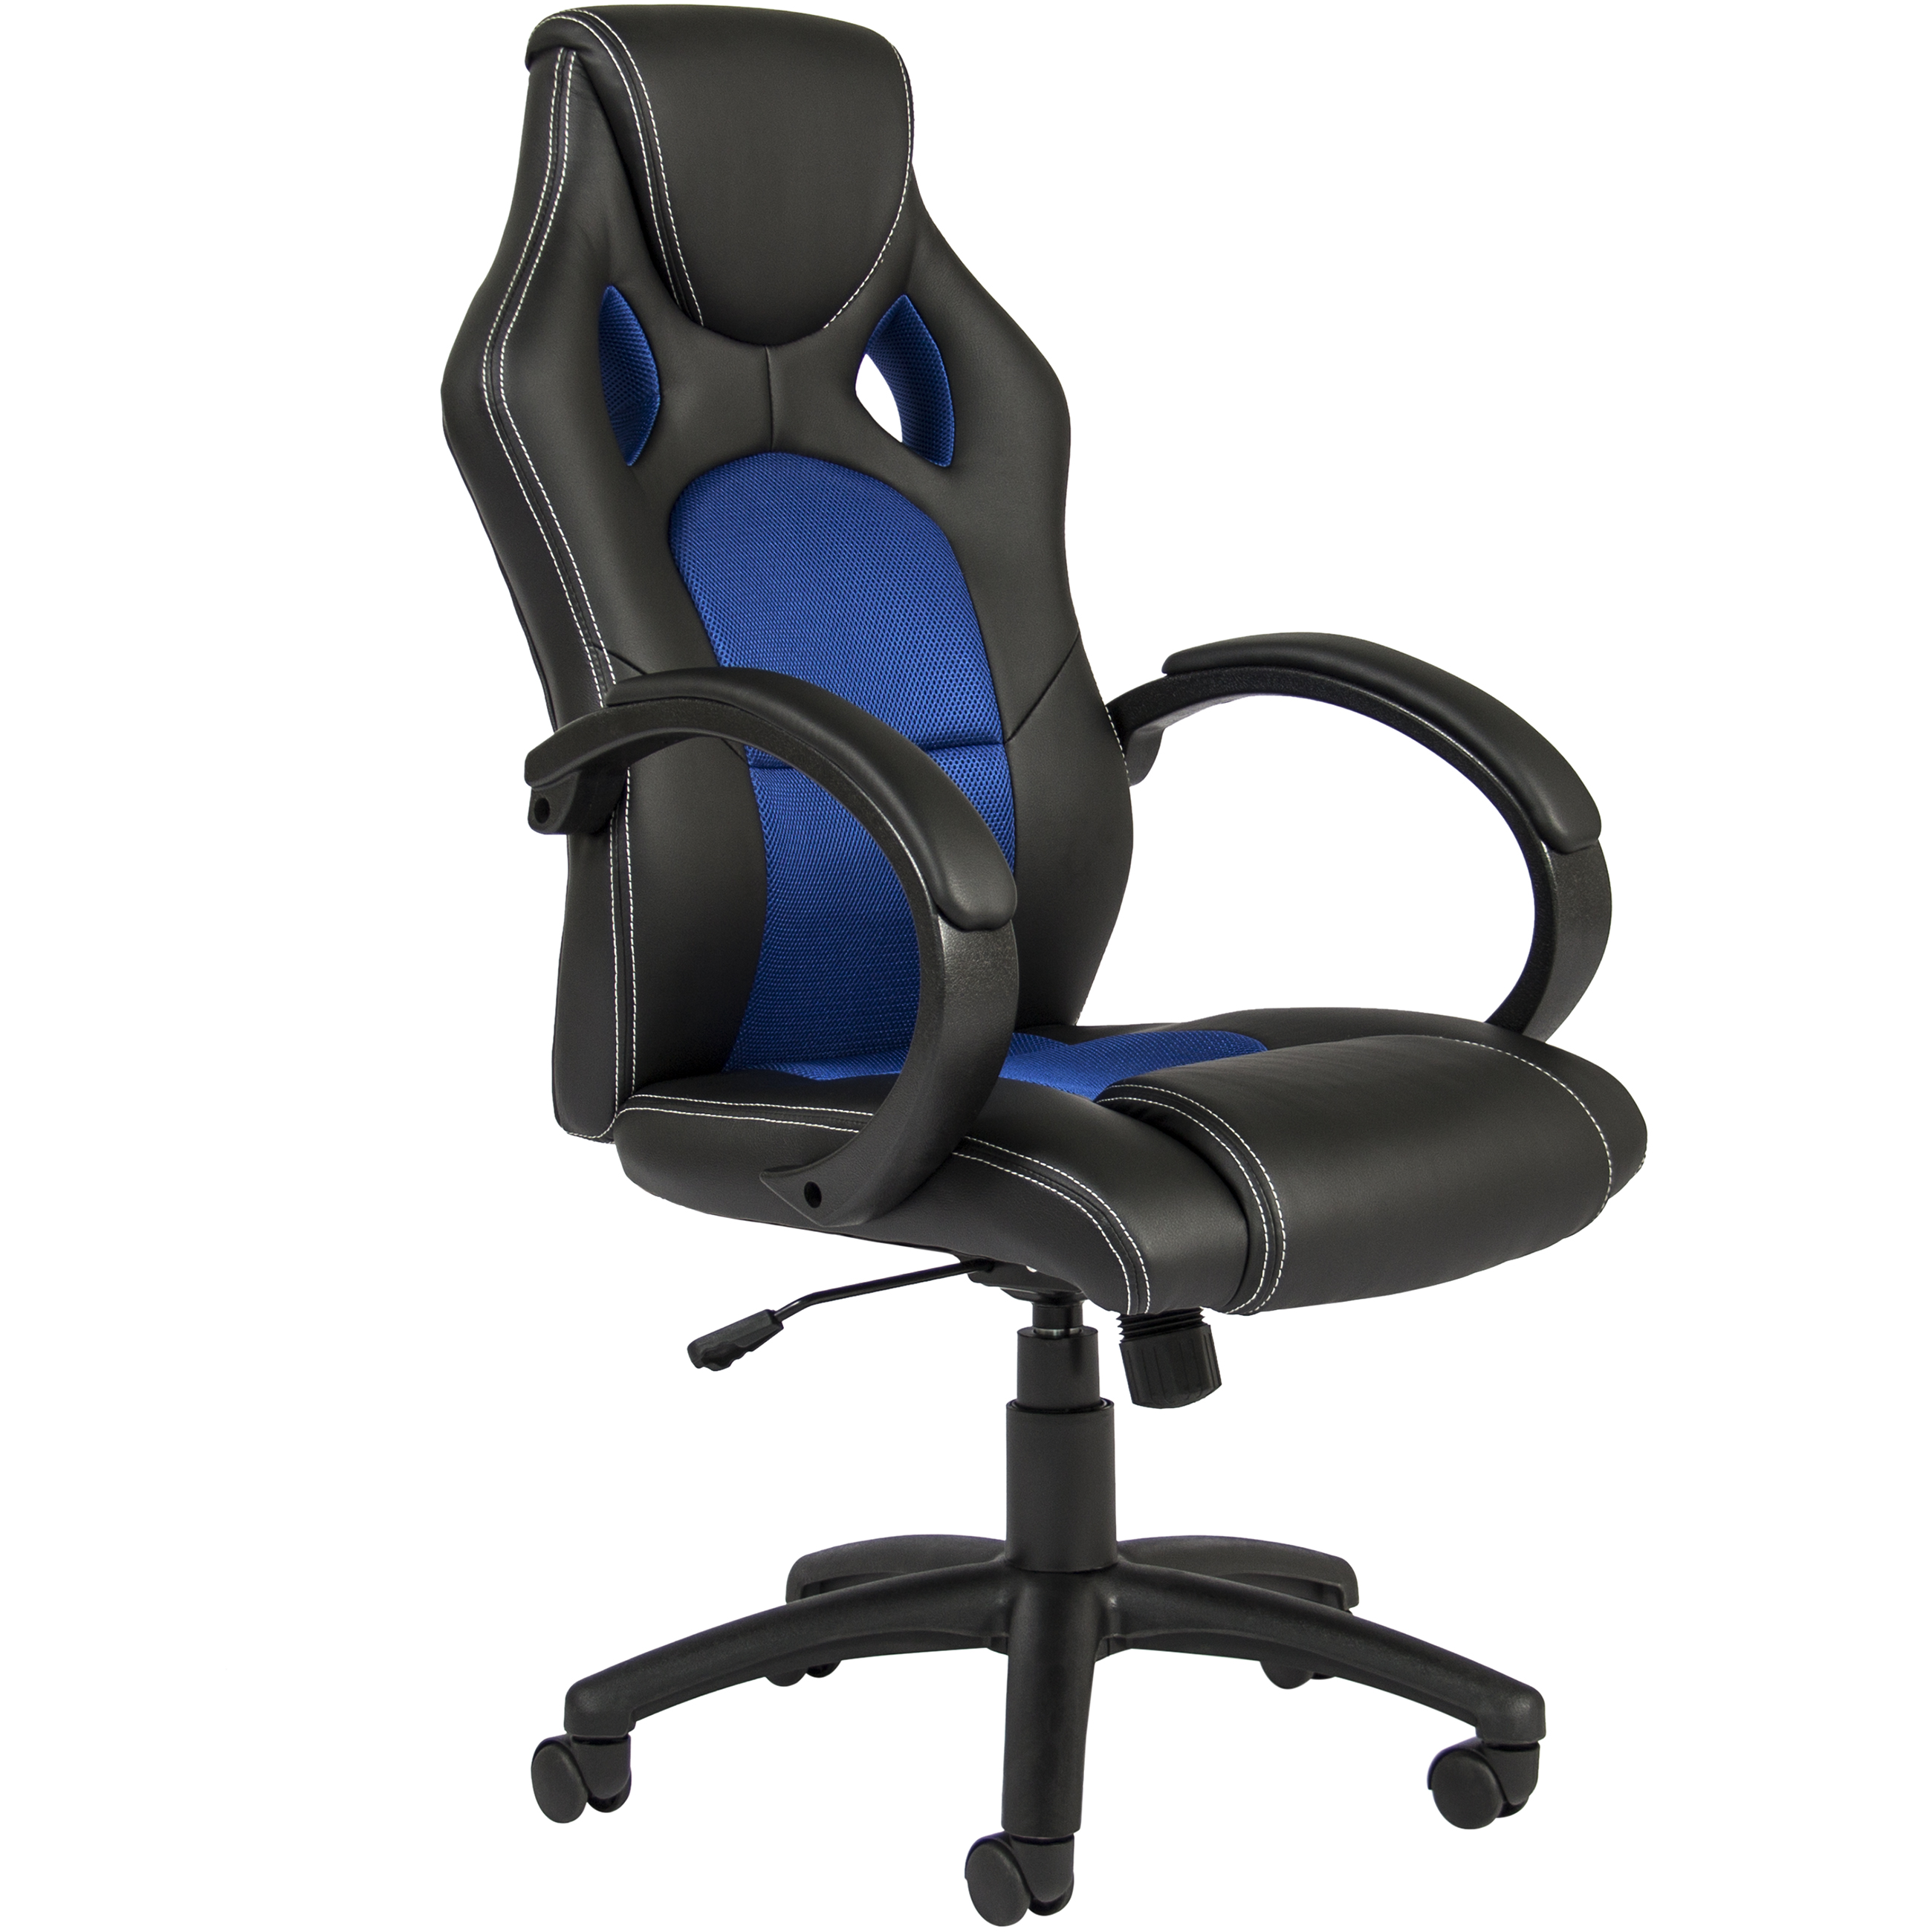 Executive Racing Gaming Office Chair PU Leather Swivel Computer Desk Seat High-Back